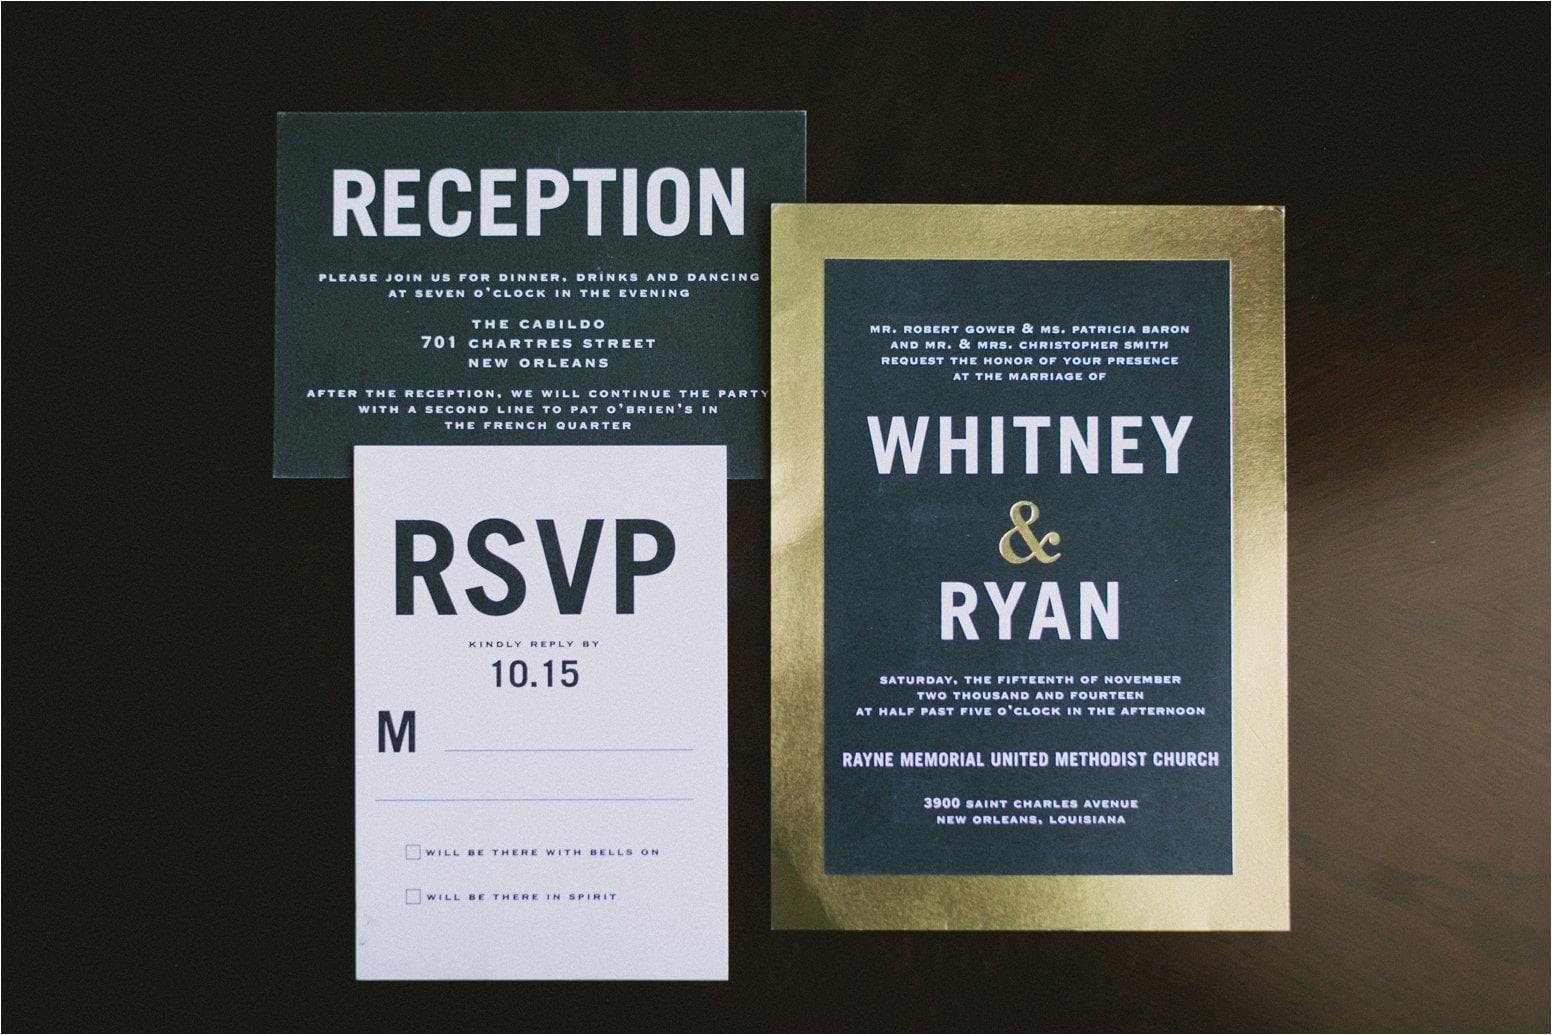 new orleans wedding photographer - Whitney and Ryan 4